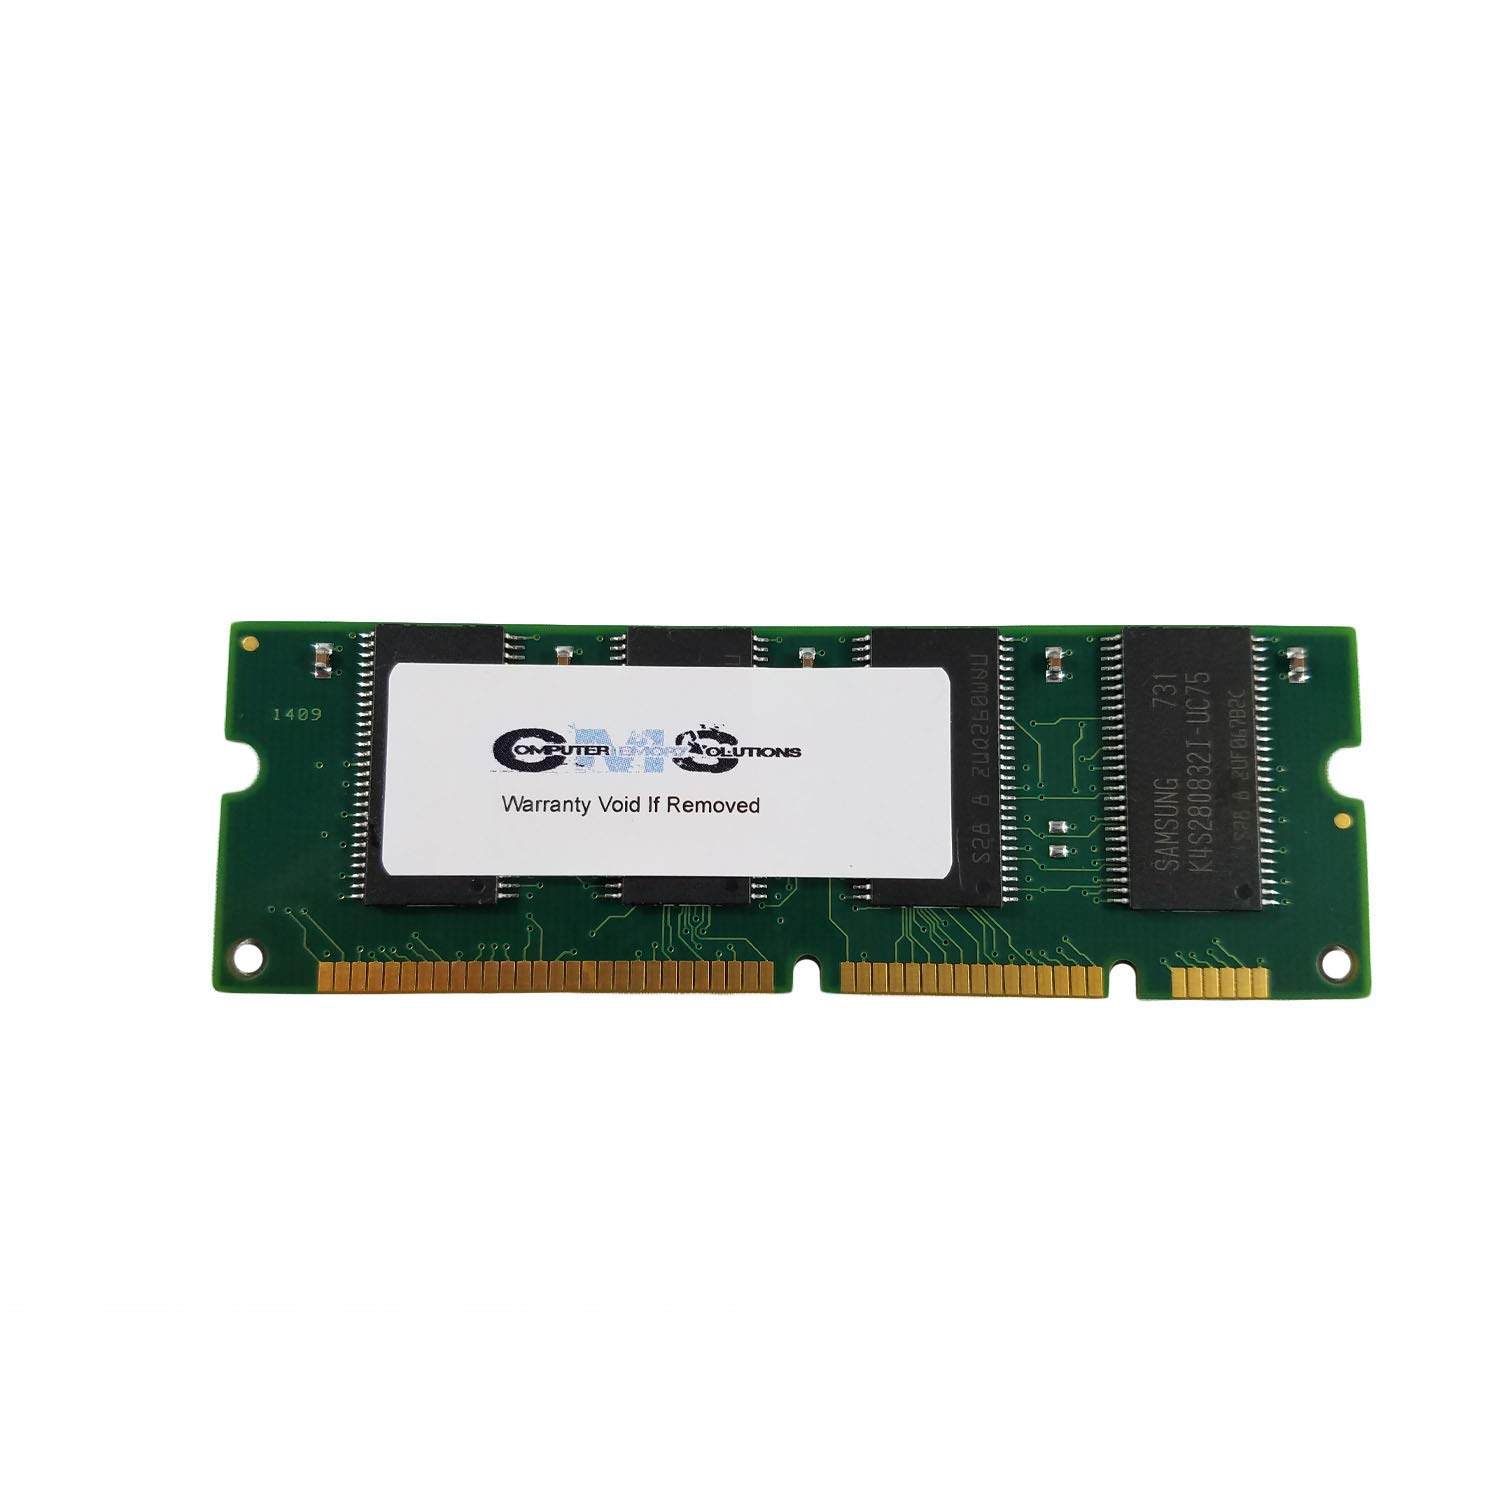 512Mb 100Pin Memory Ram Compatible with Hp Laserjet 4250, 4250Dtn, 4250Dtnsl, 4250N, 4250Tn. By CMS B106 by Computer Memory Solutions